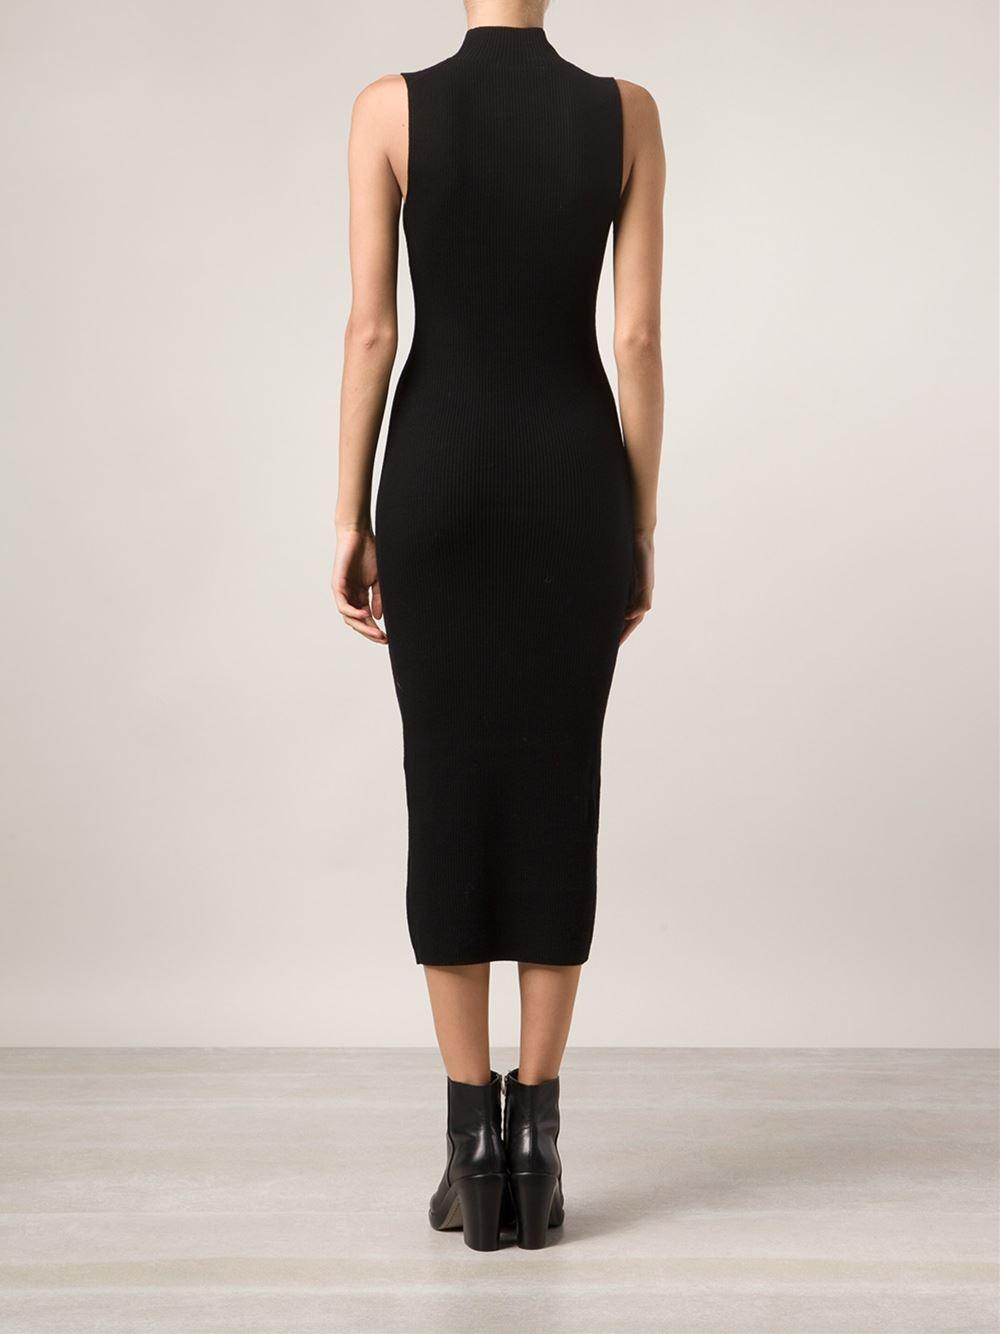 Theory 'ulana evian' stretch dress